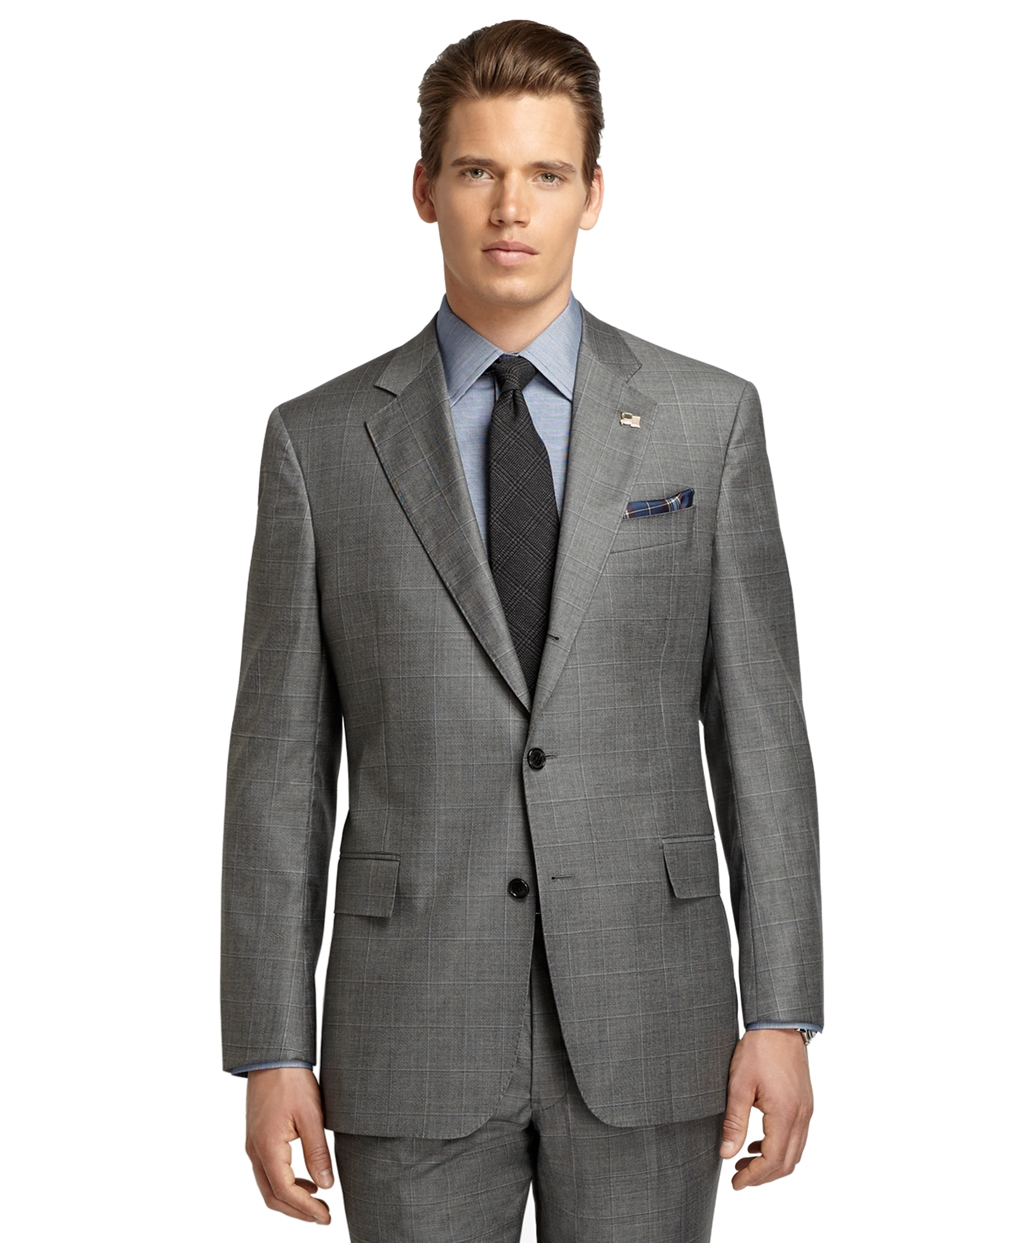 Cuttingboard's photos in When is the Next Brooks Brothers Sale?